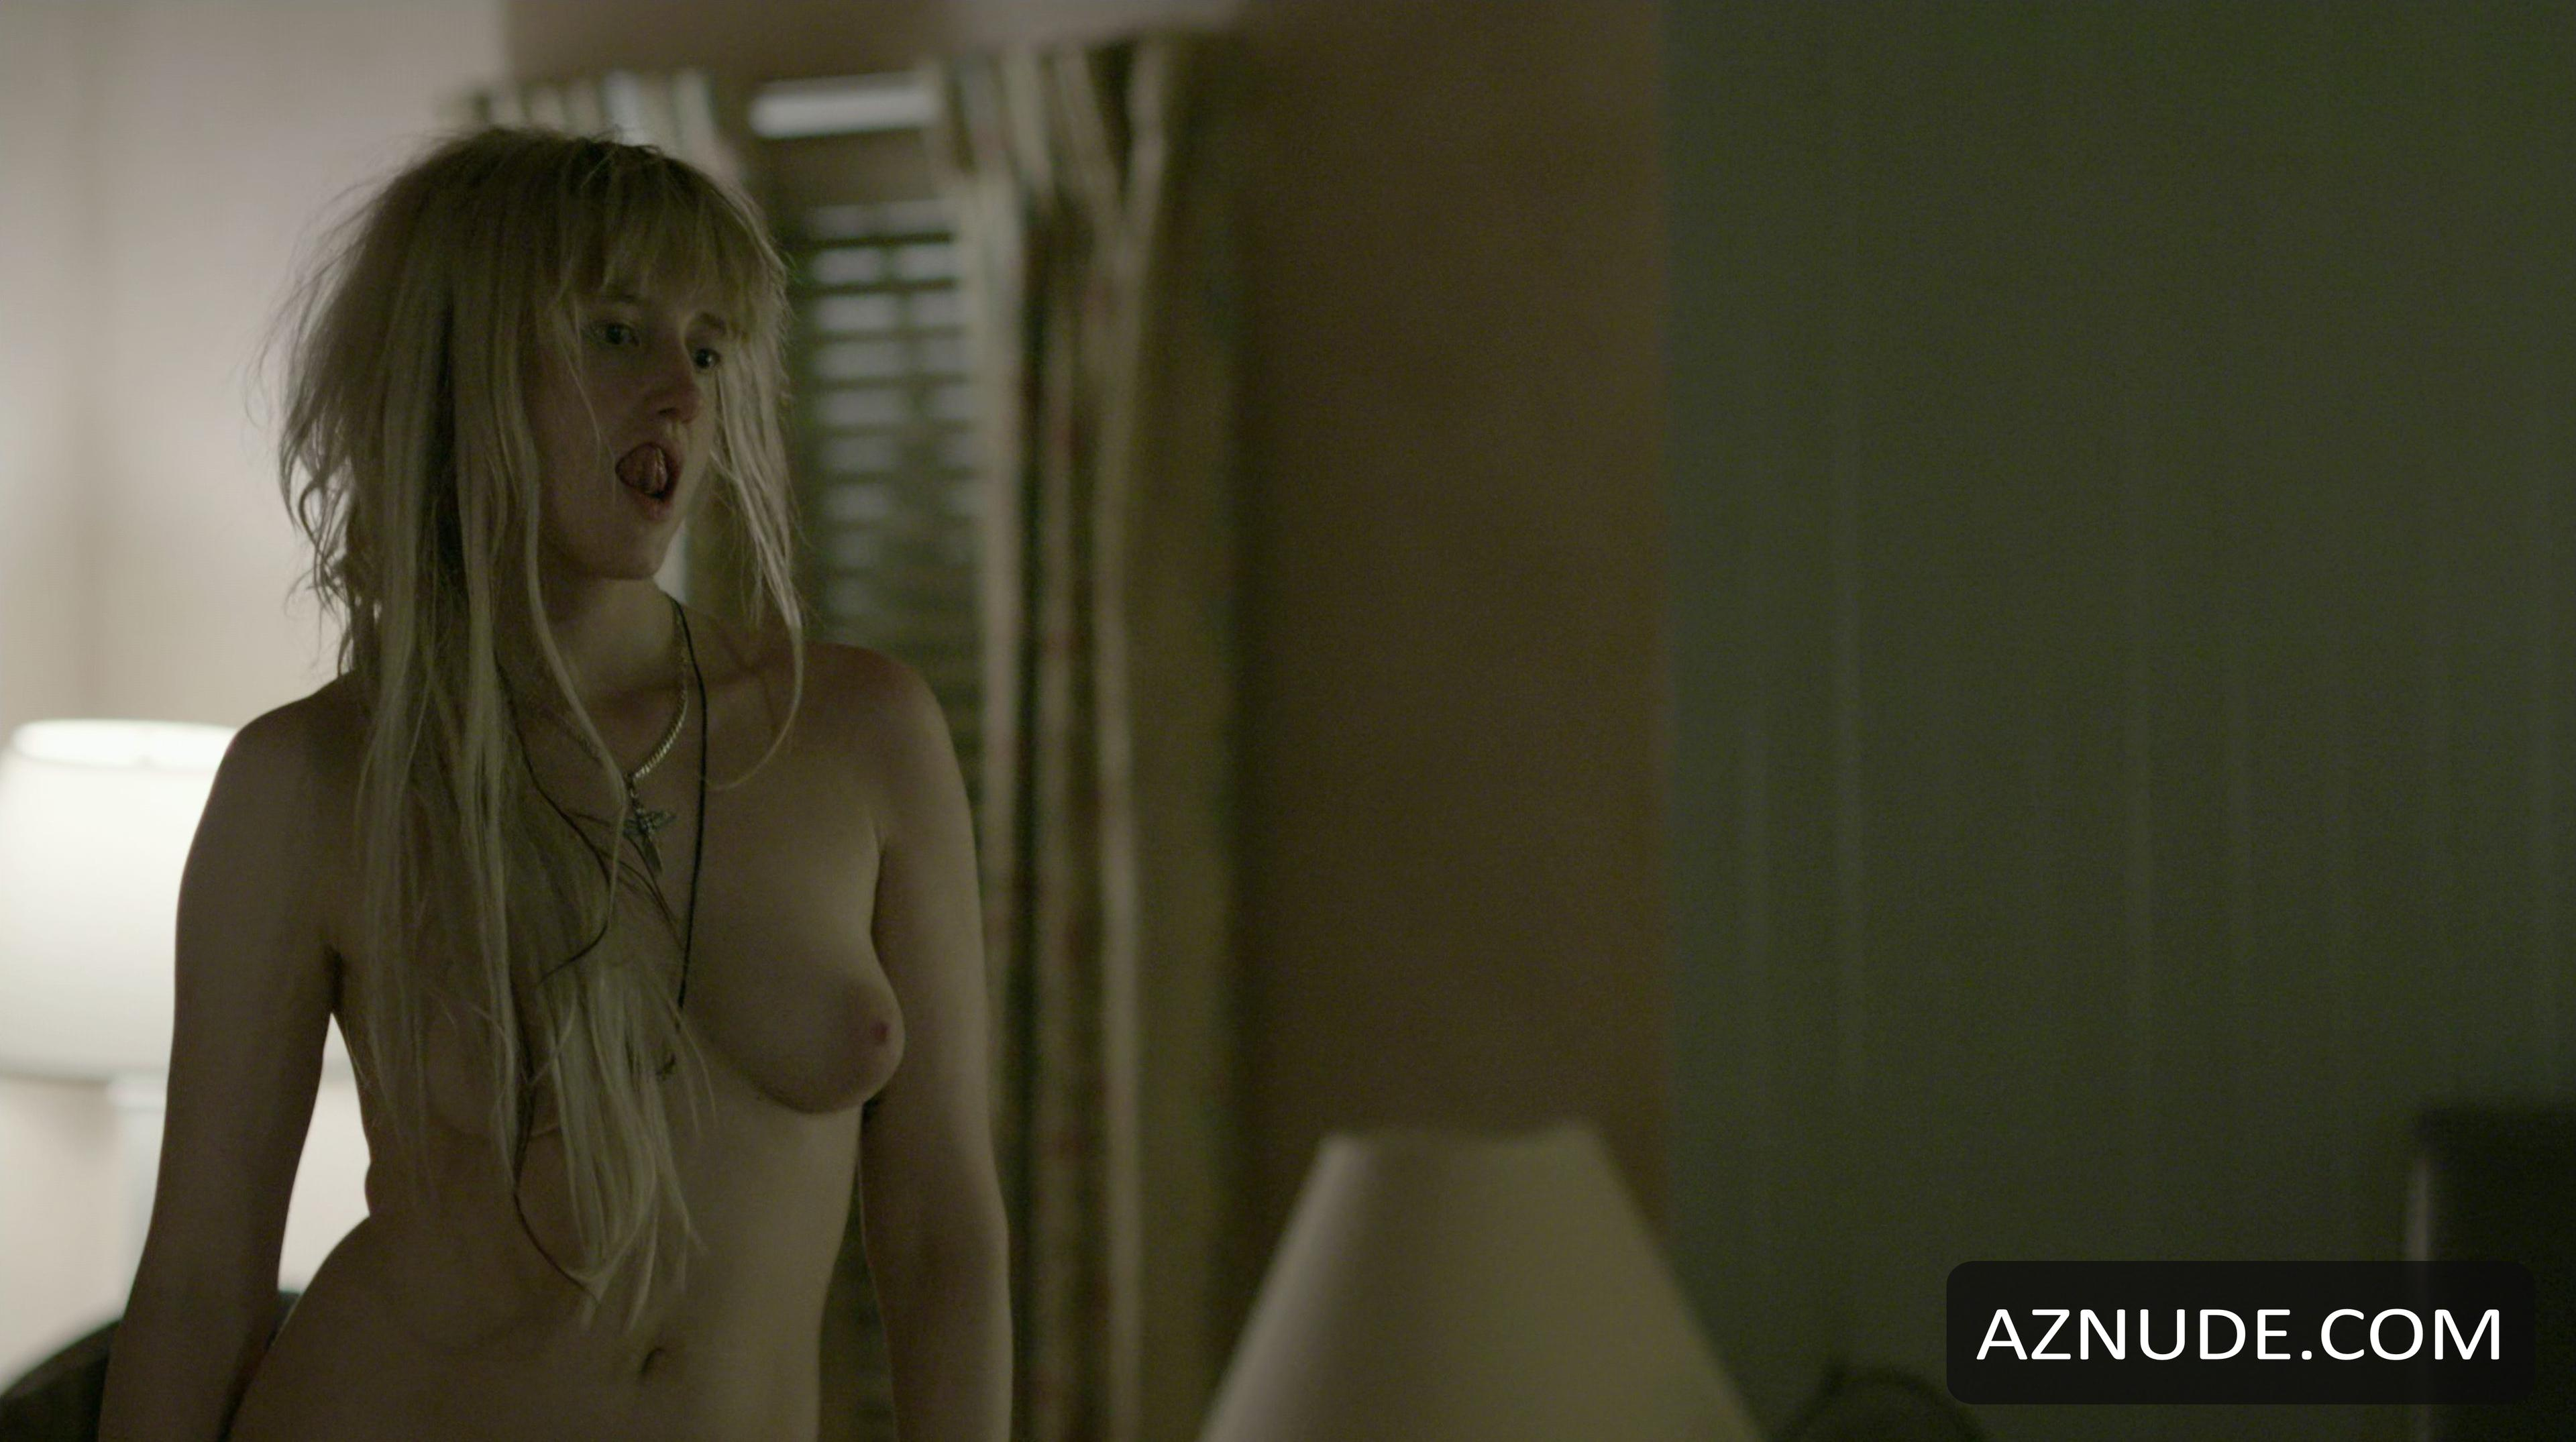 Sex Andrea Riseborough nudes (93 foto and video), Topless, Fappening, Twitter, lingerie 2017